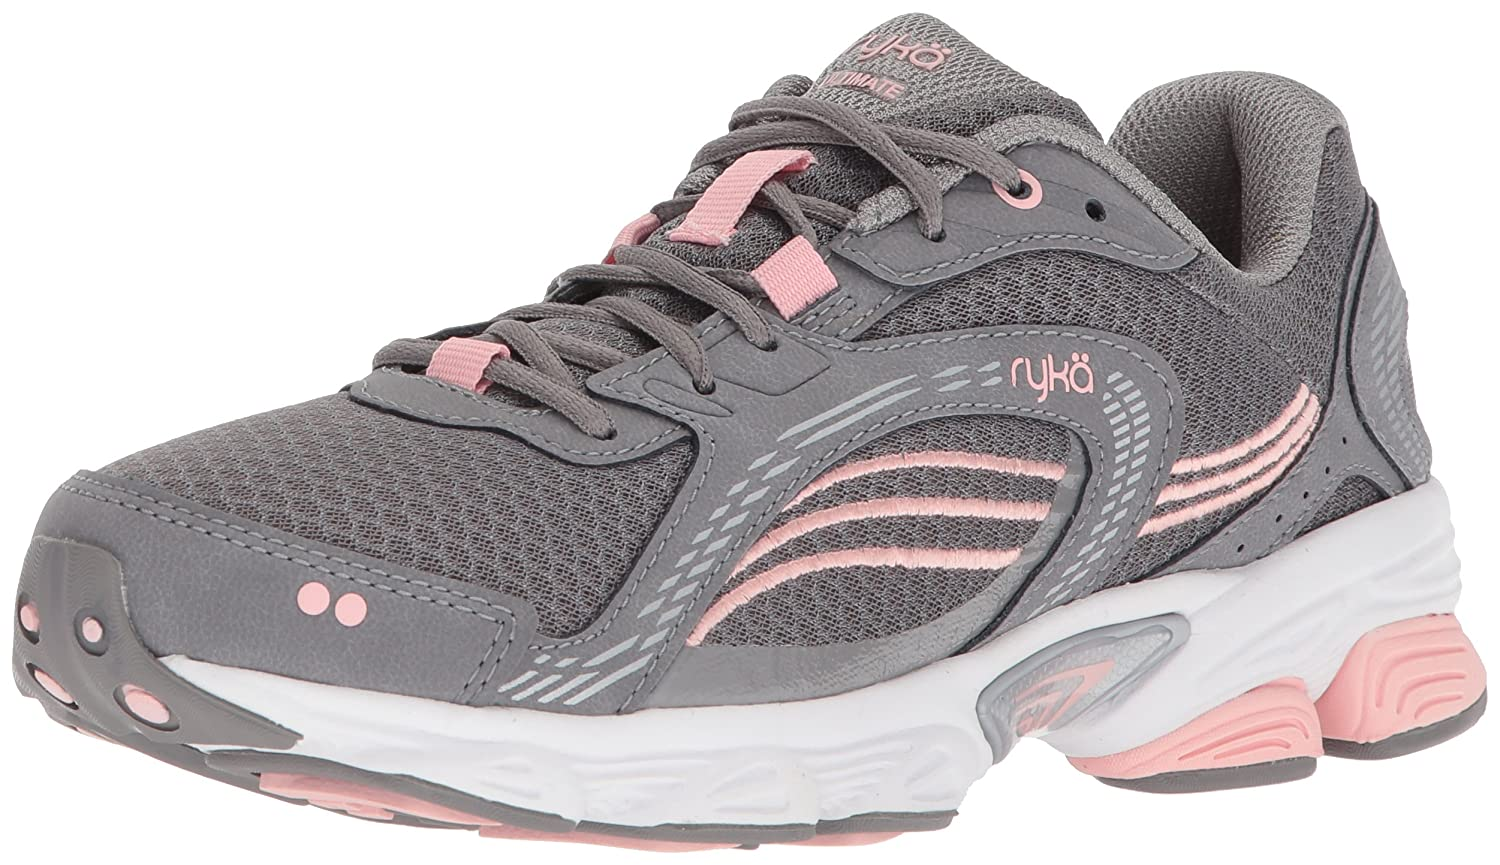 Ryka Women's Ultimate Running Shoe B0757CXCBY 11 W US|Frost Grey/English Rose/Chrome Silver